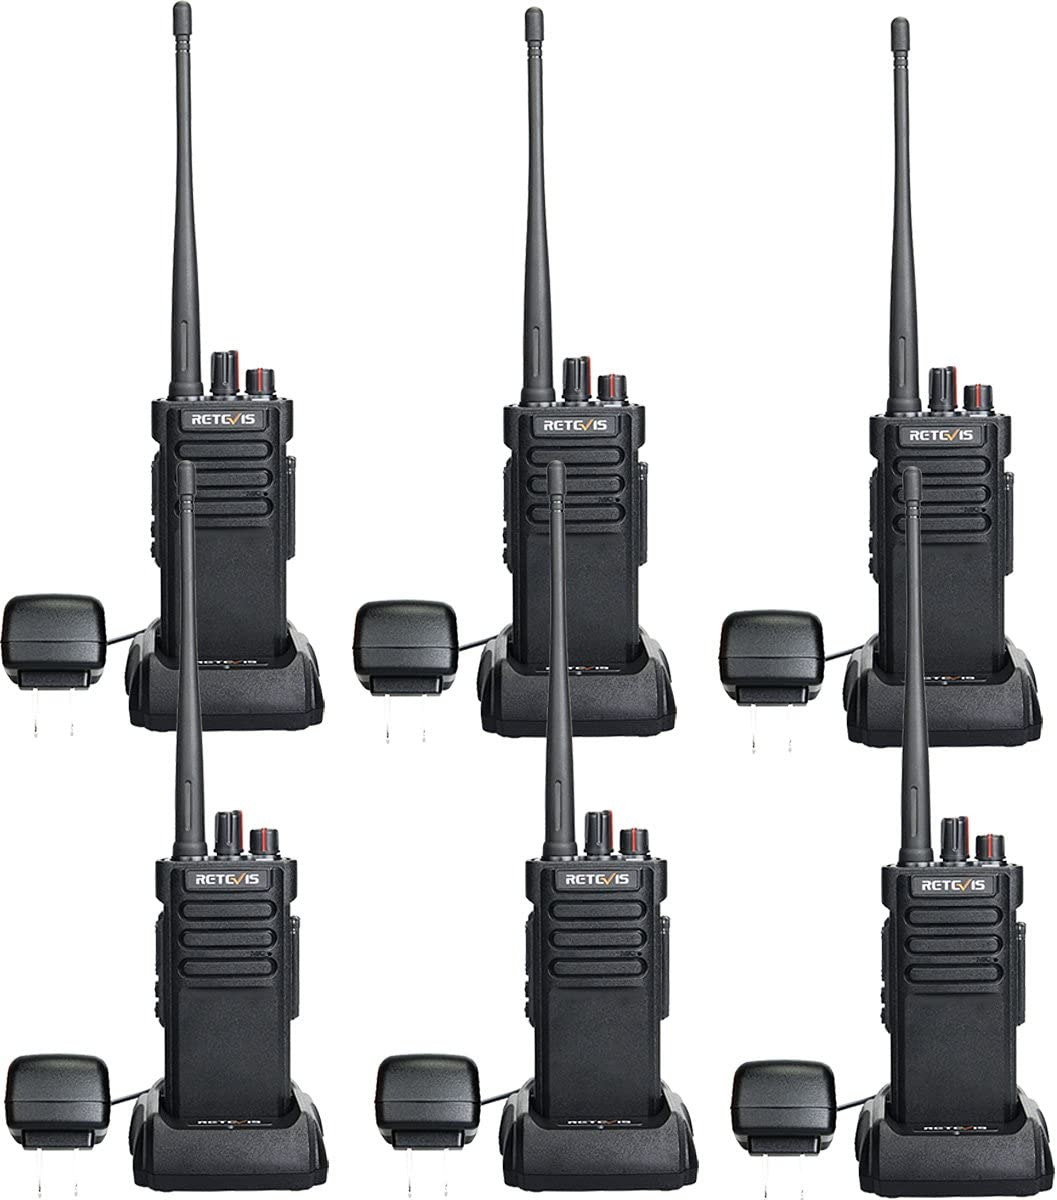 Retevis RT29 2 Way Radios Walkie Talkies Long Range High Power Heavy Duty Long Distance Two Way Radios Rechargeable with VOX Alarm(6 Pack)